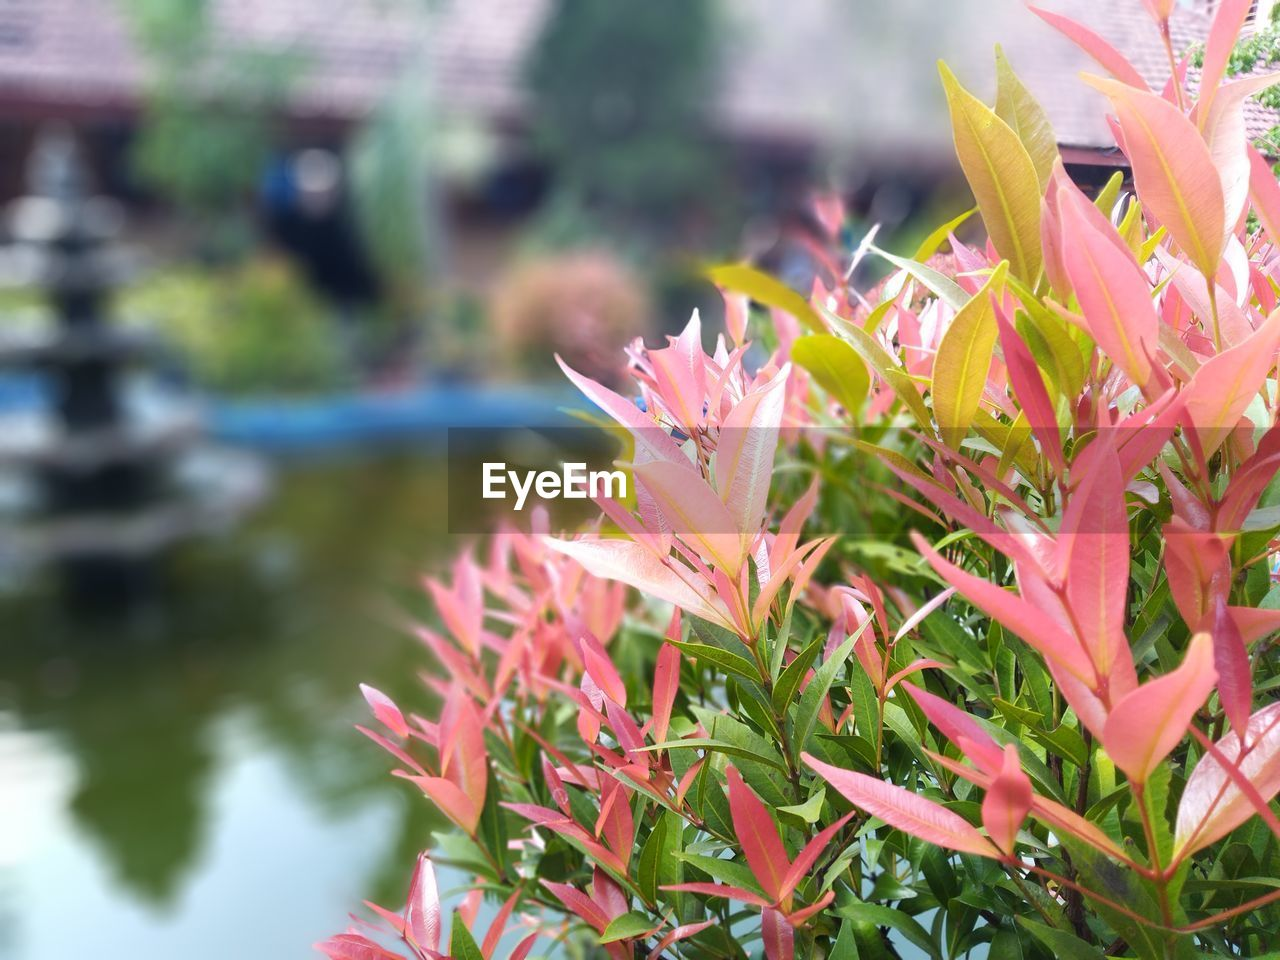 plant, beauty in nature, growth, flower, flowering plant, freshness, close-up, fragility, vulnerability, petal, nature, day, leaf, plant part, water, focus on foreground, no people, selective focus, flower head, outdoors